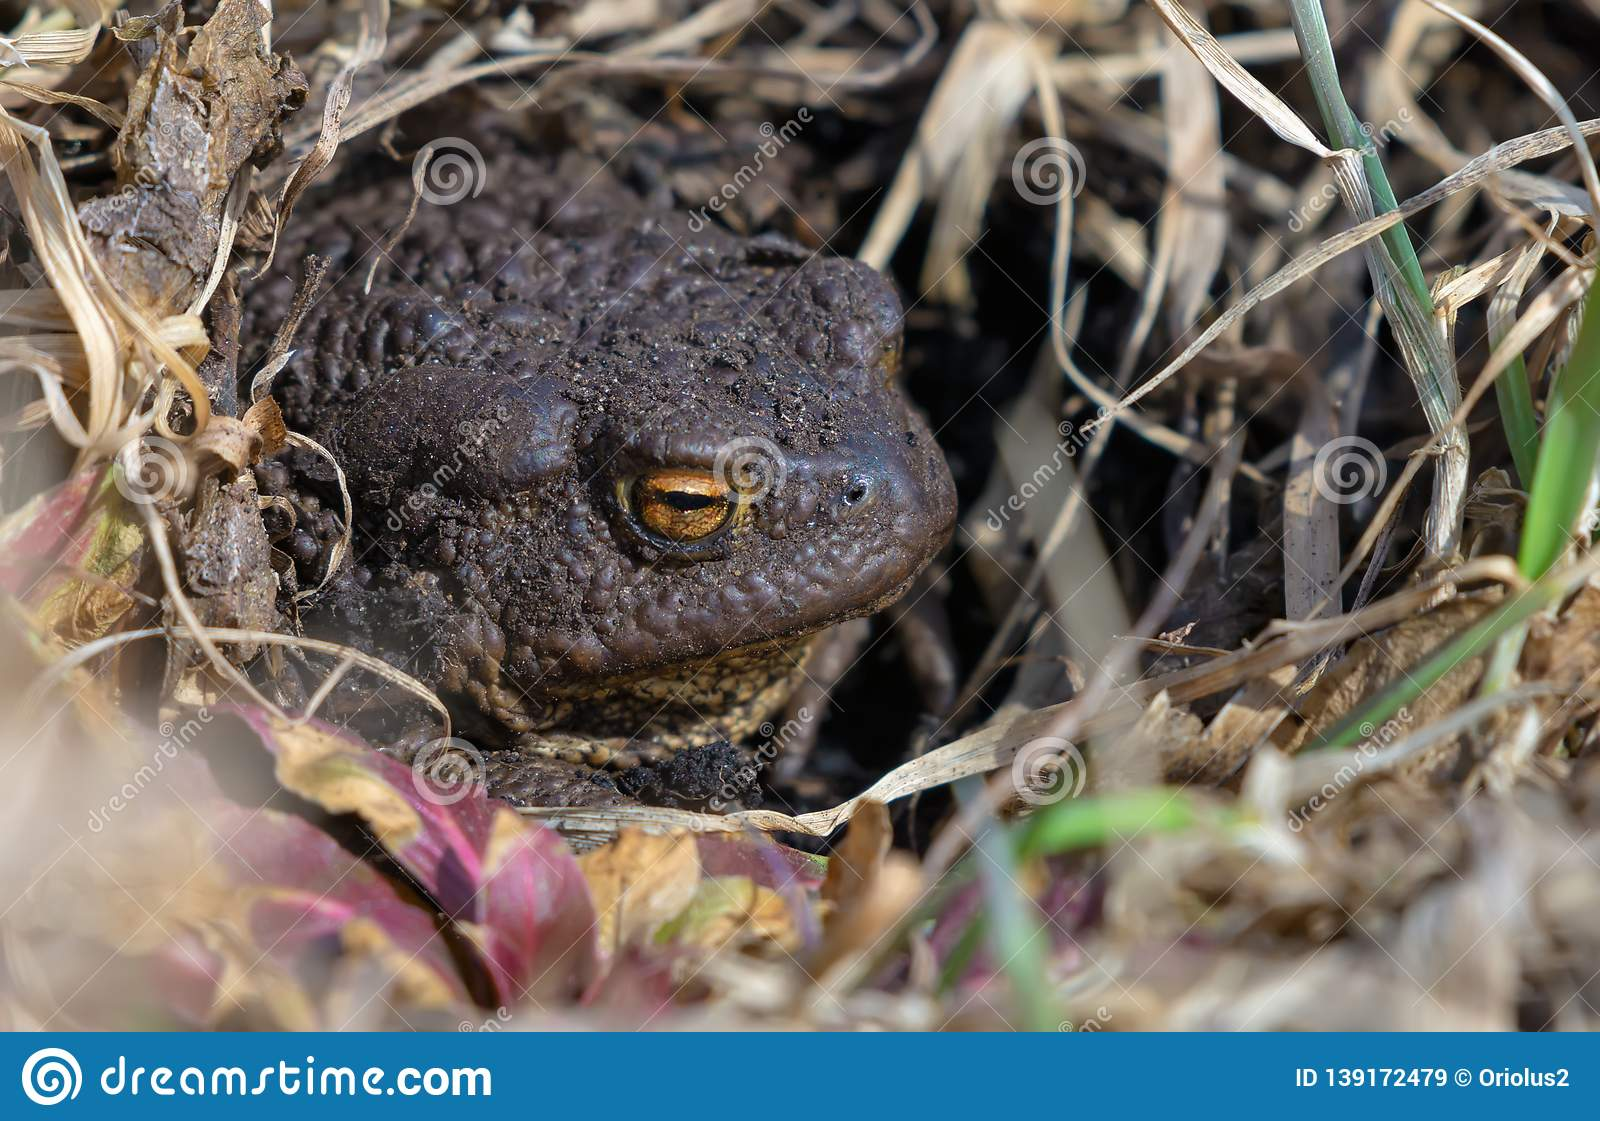 Common toad reposes itself under bright sun in warm spring